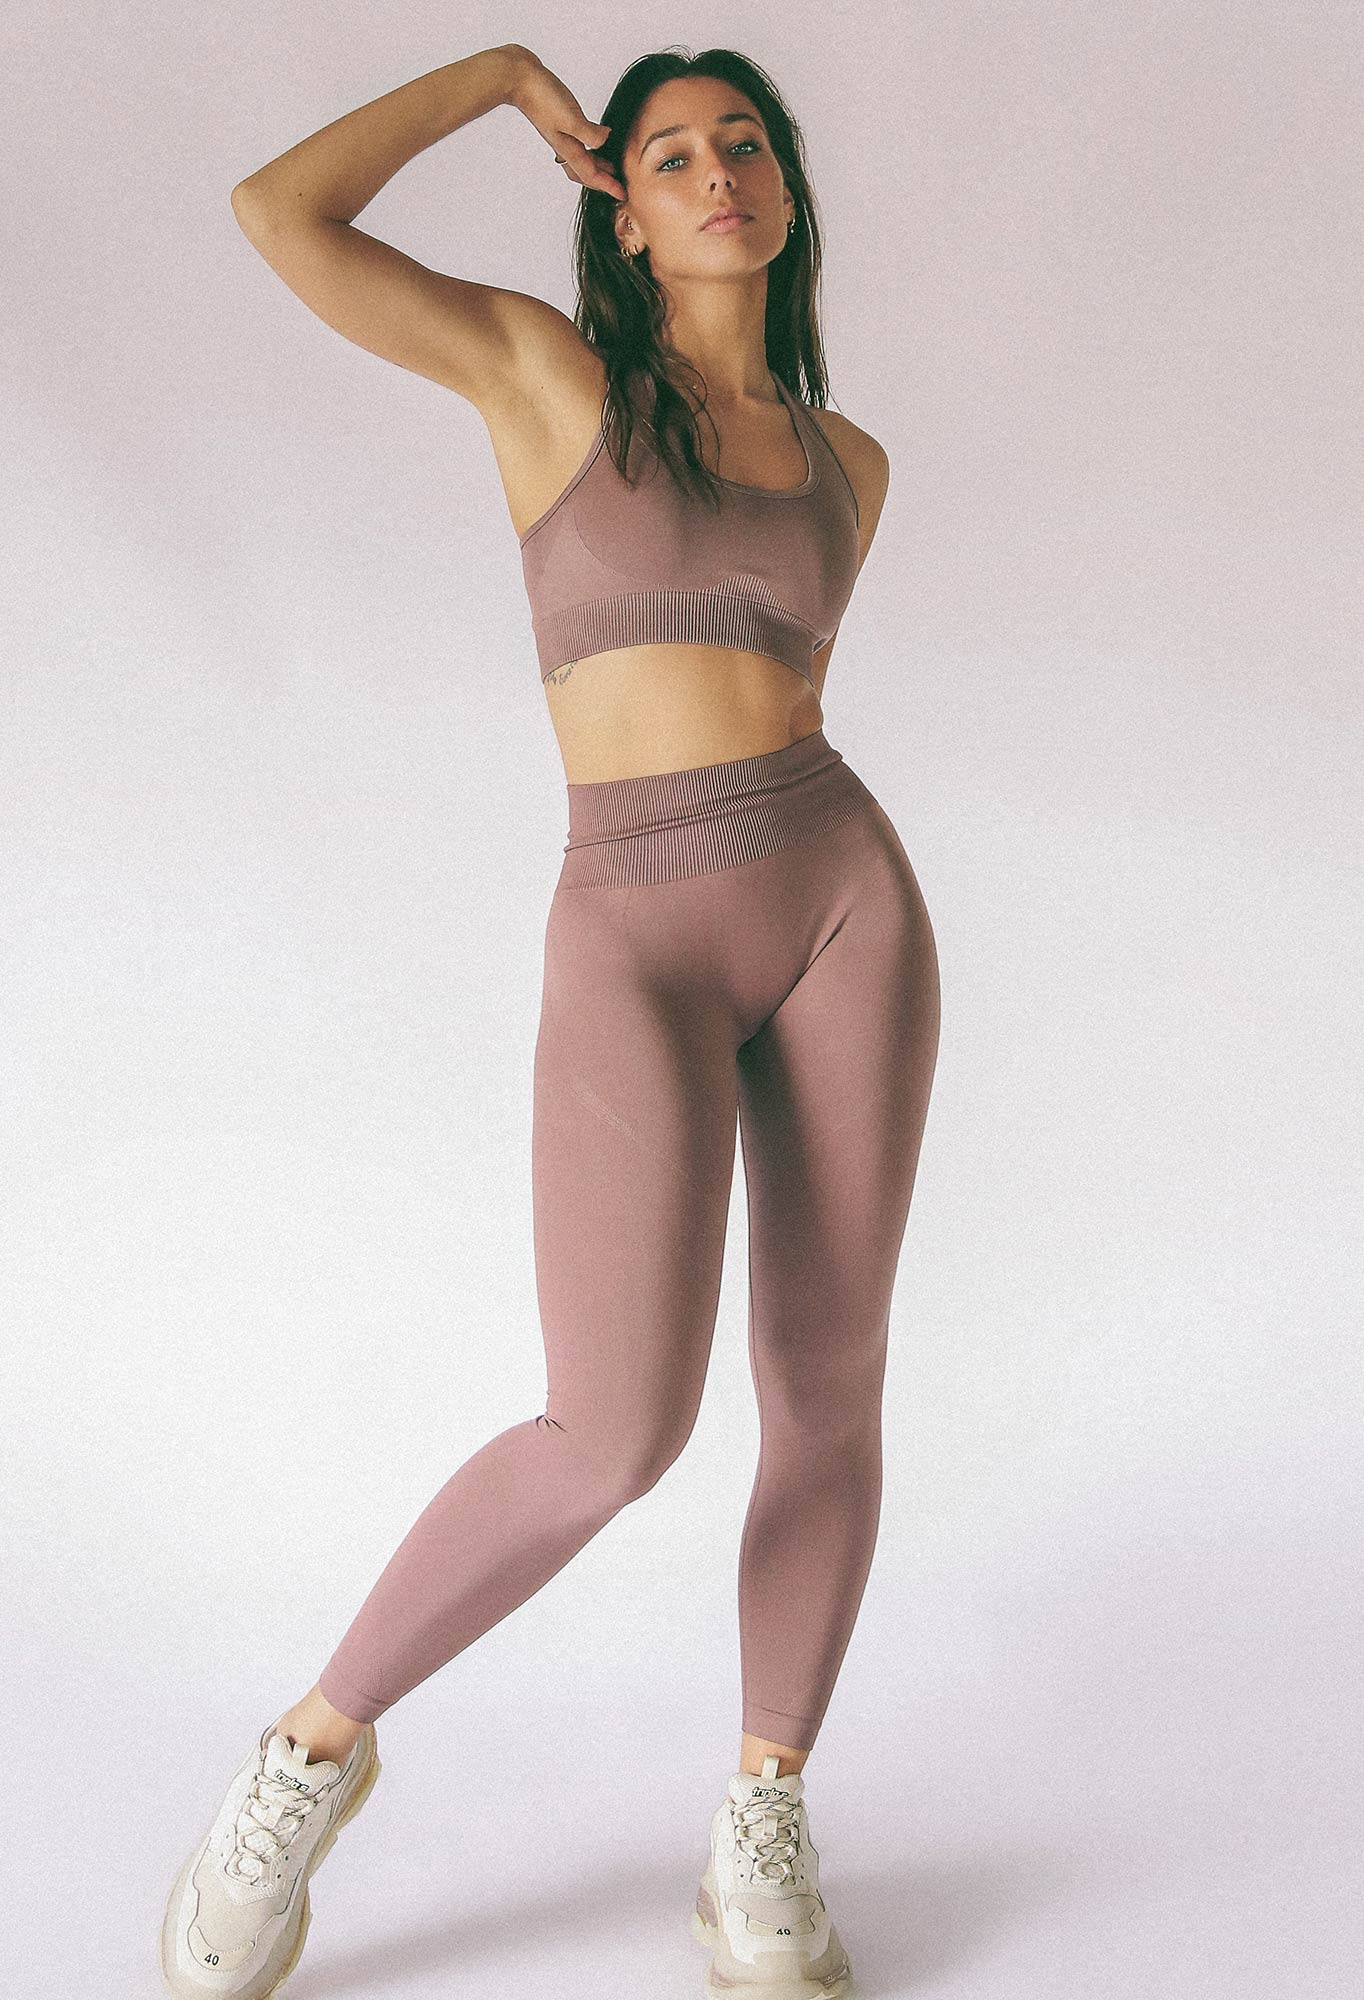 model wearing women's sports bra and yoga pants in skin colour